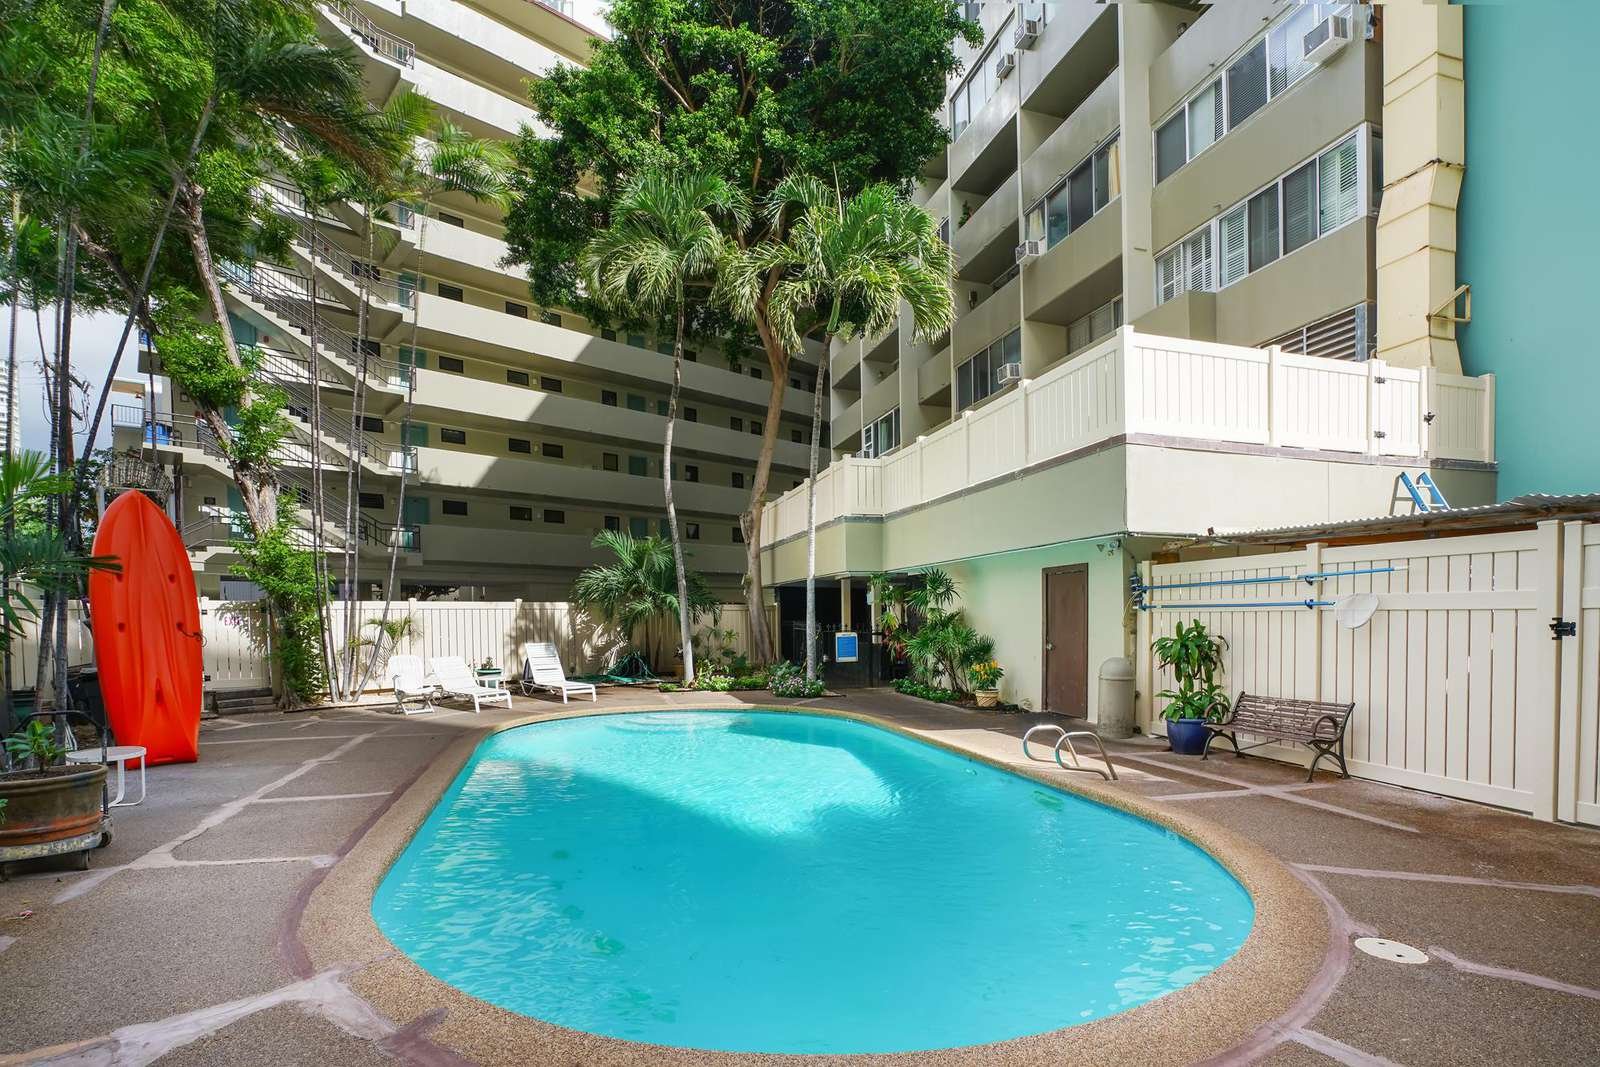 Crystal clear pool on 1st floor for your enjoyment.